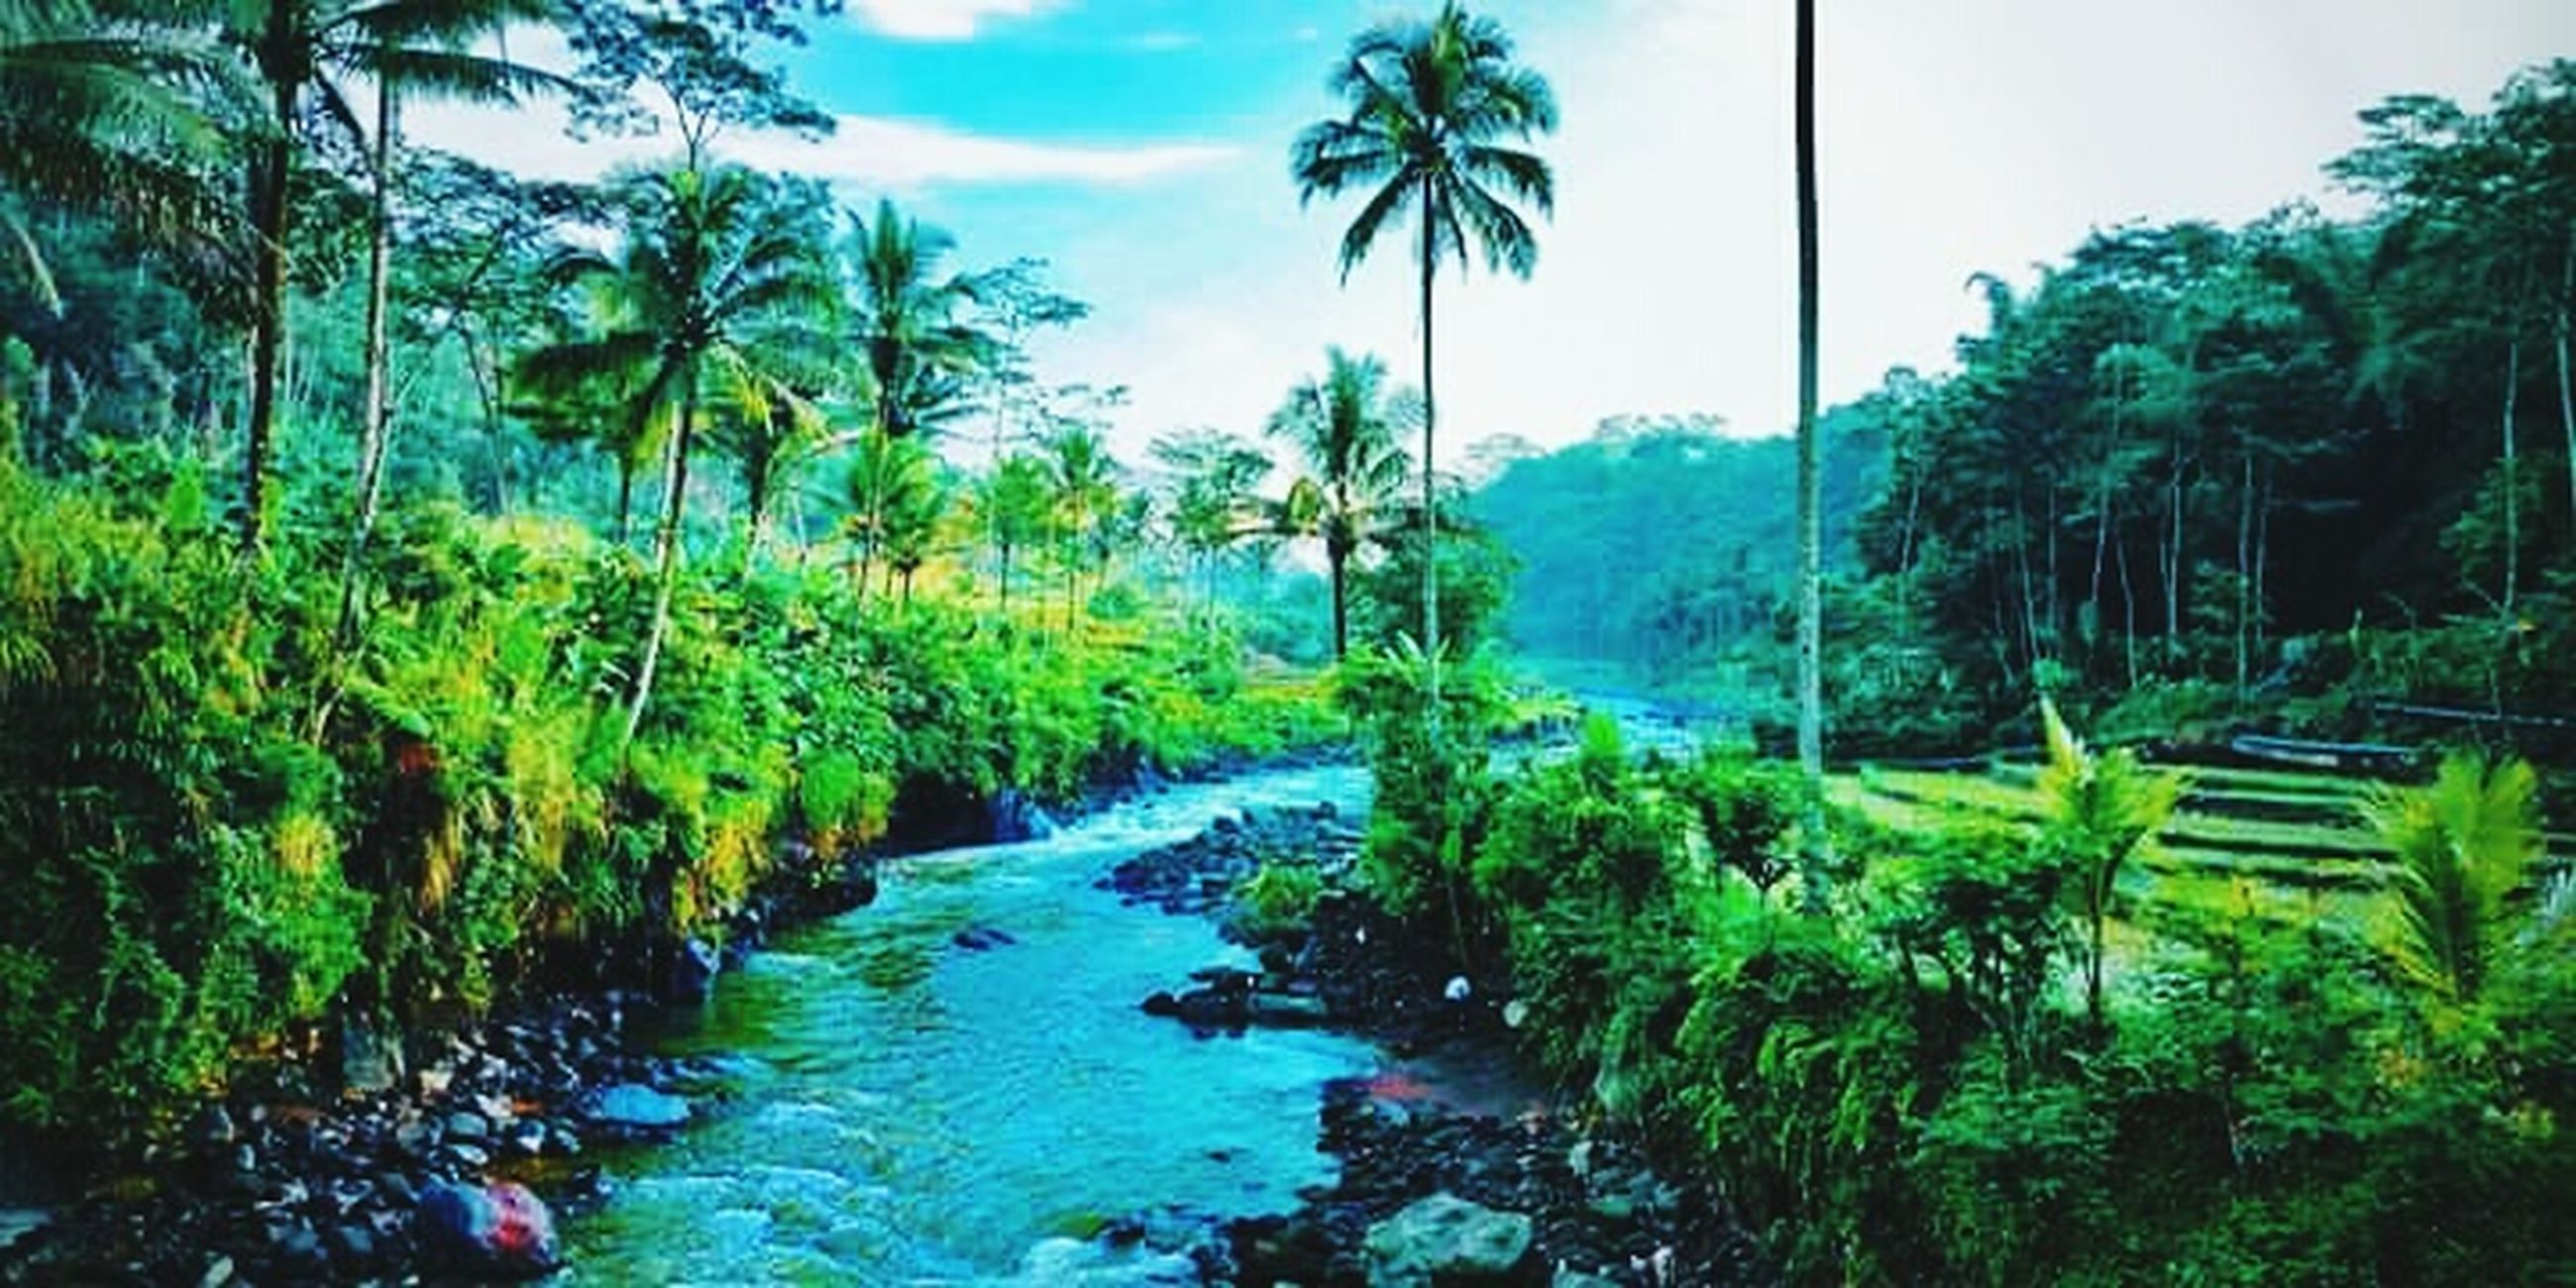 tree, plant, nature, tranquility, palm tree, water, tranquil scene, scenics - nature, green color, beauty in nature, growth, tropical climate, sky, land, environment, day, forest, no people, cloud - sky, outdoors, coconut palm tree, pollution, tropical tree, rainforest